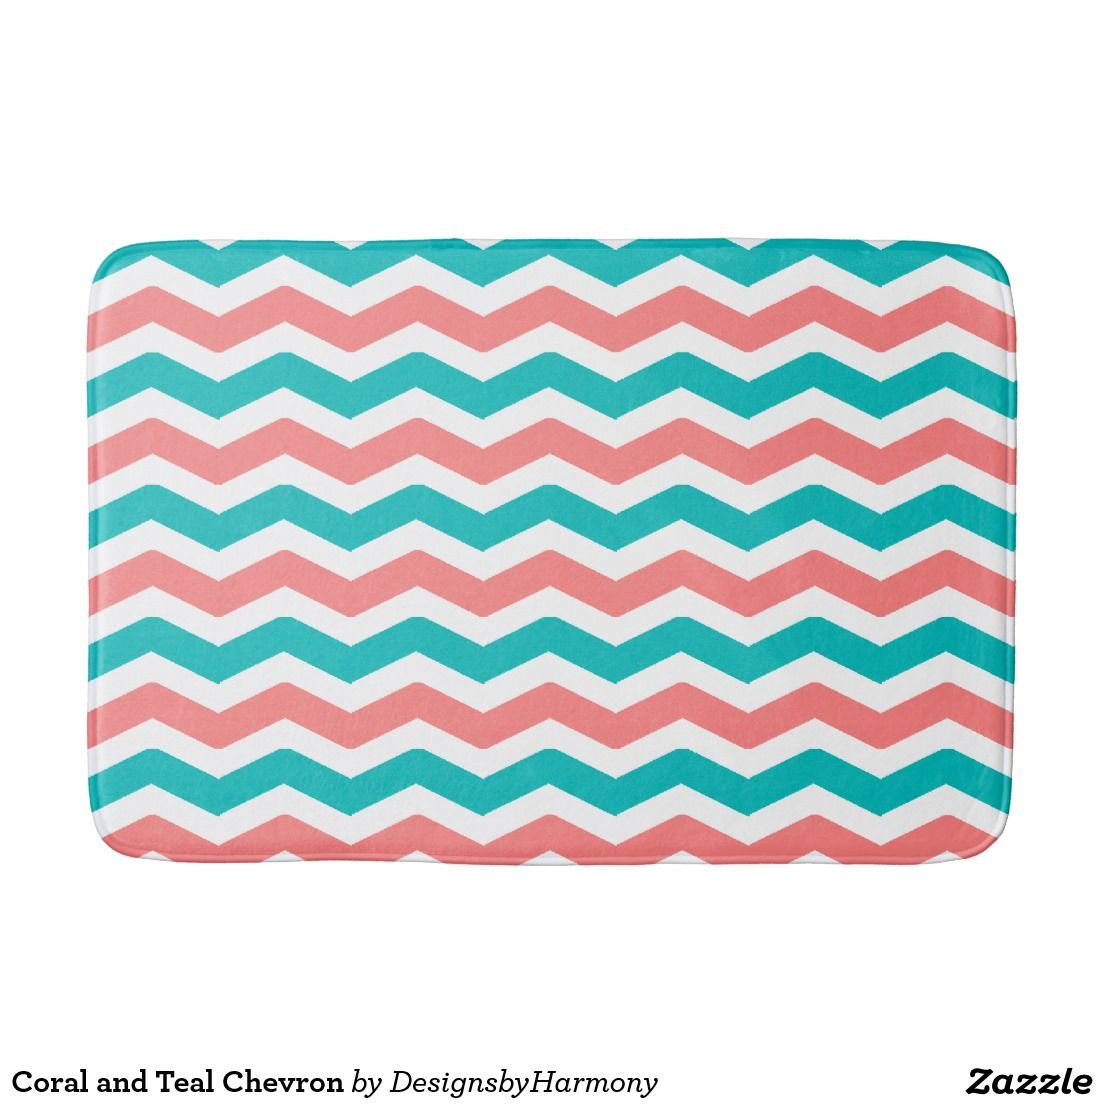 Coral and Teal Chevron Bathroom Mat